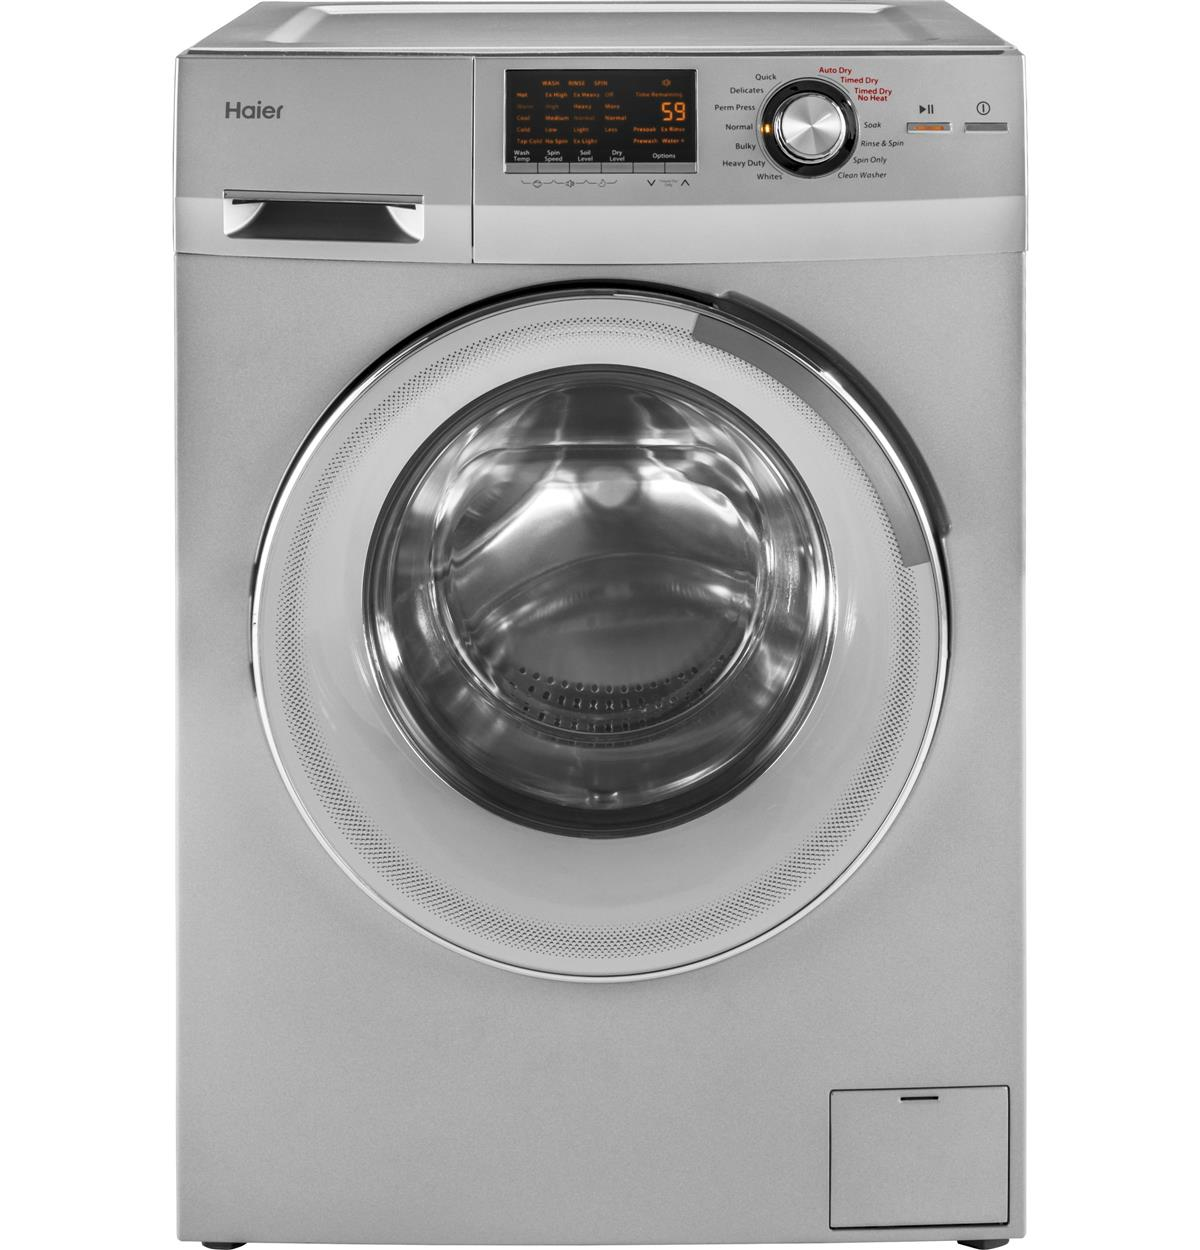 Silver Unitized Spacemaker Washer & Dryers HLC1700AXS Un-installed/free-standing